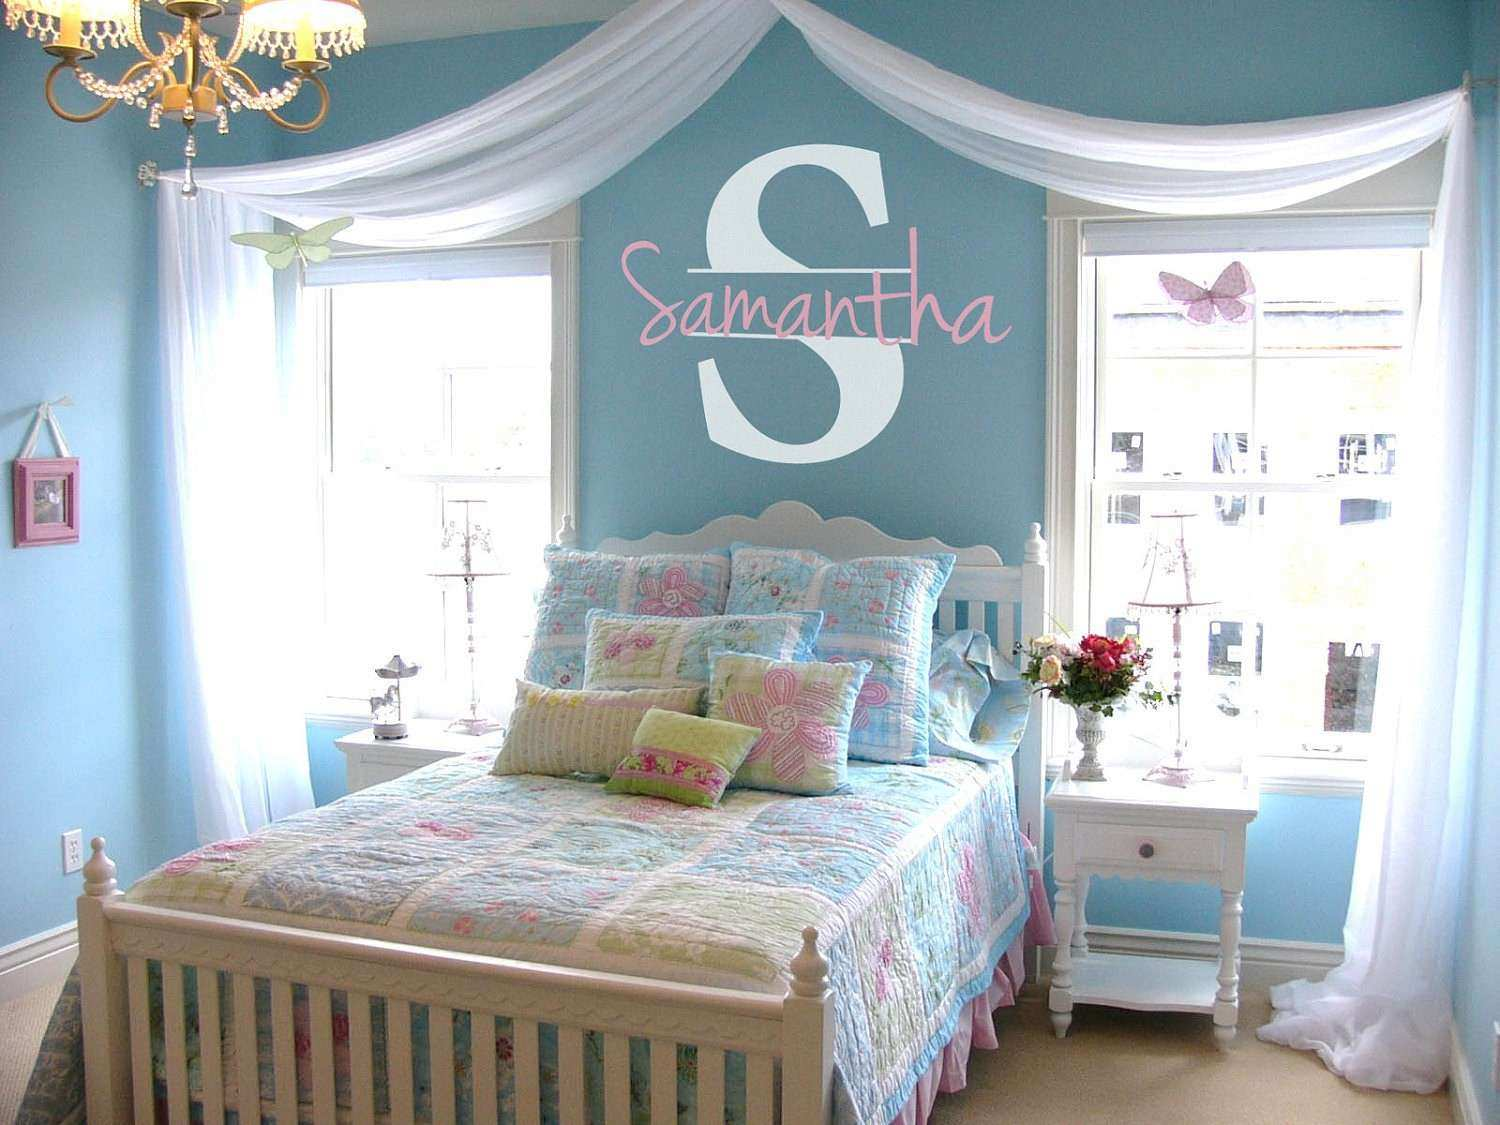 Personalized Name & Initial Vinyl Wall Decal Sticker